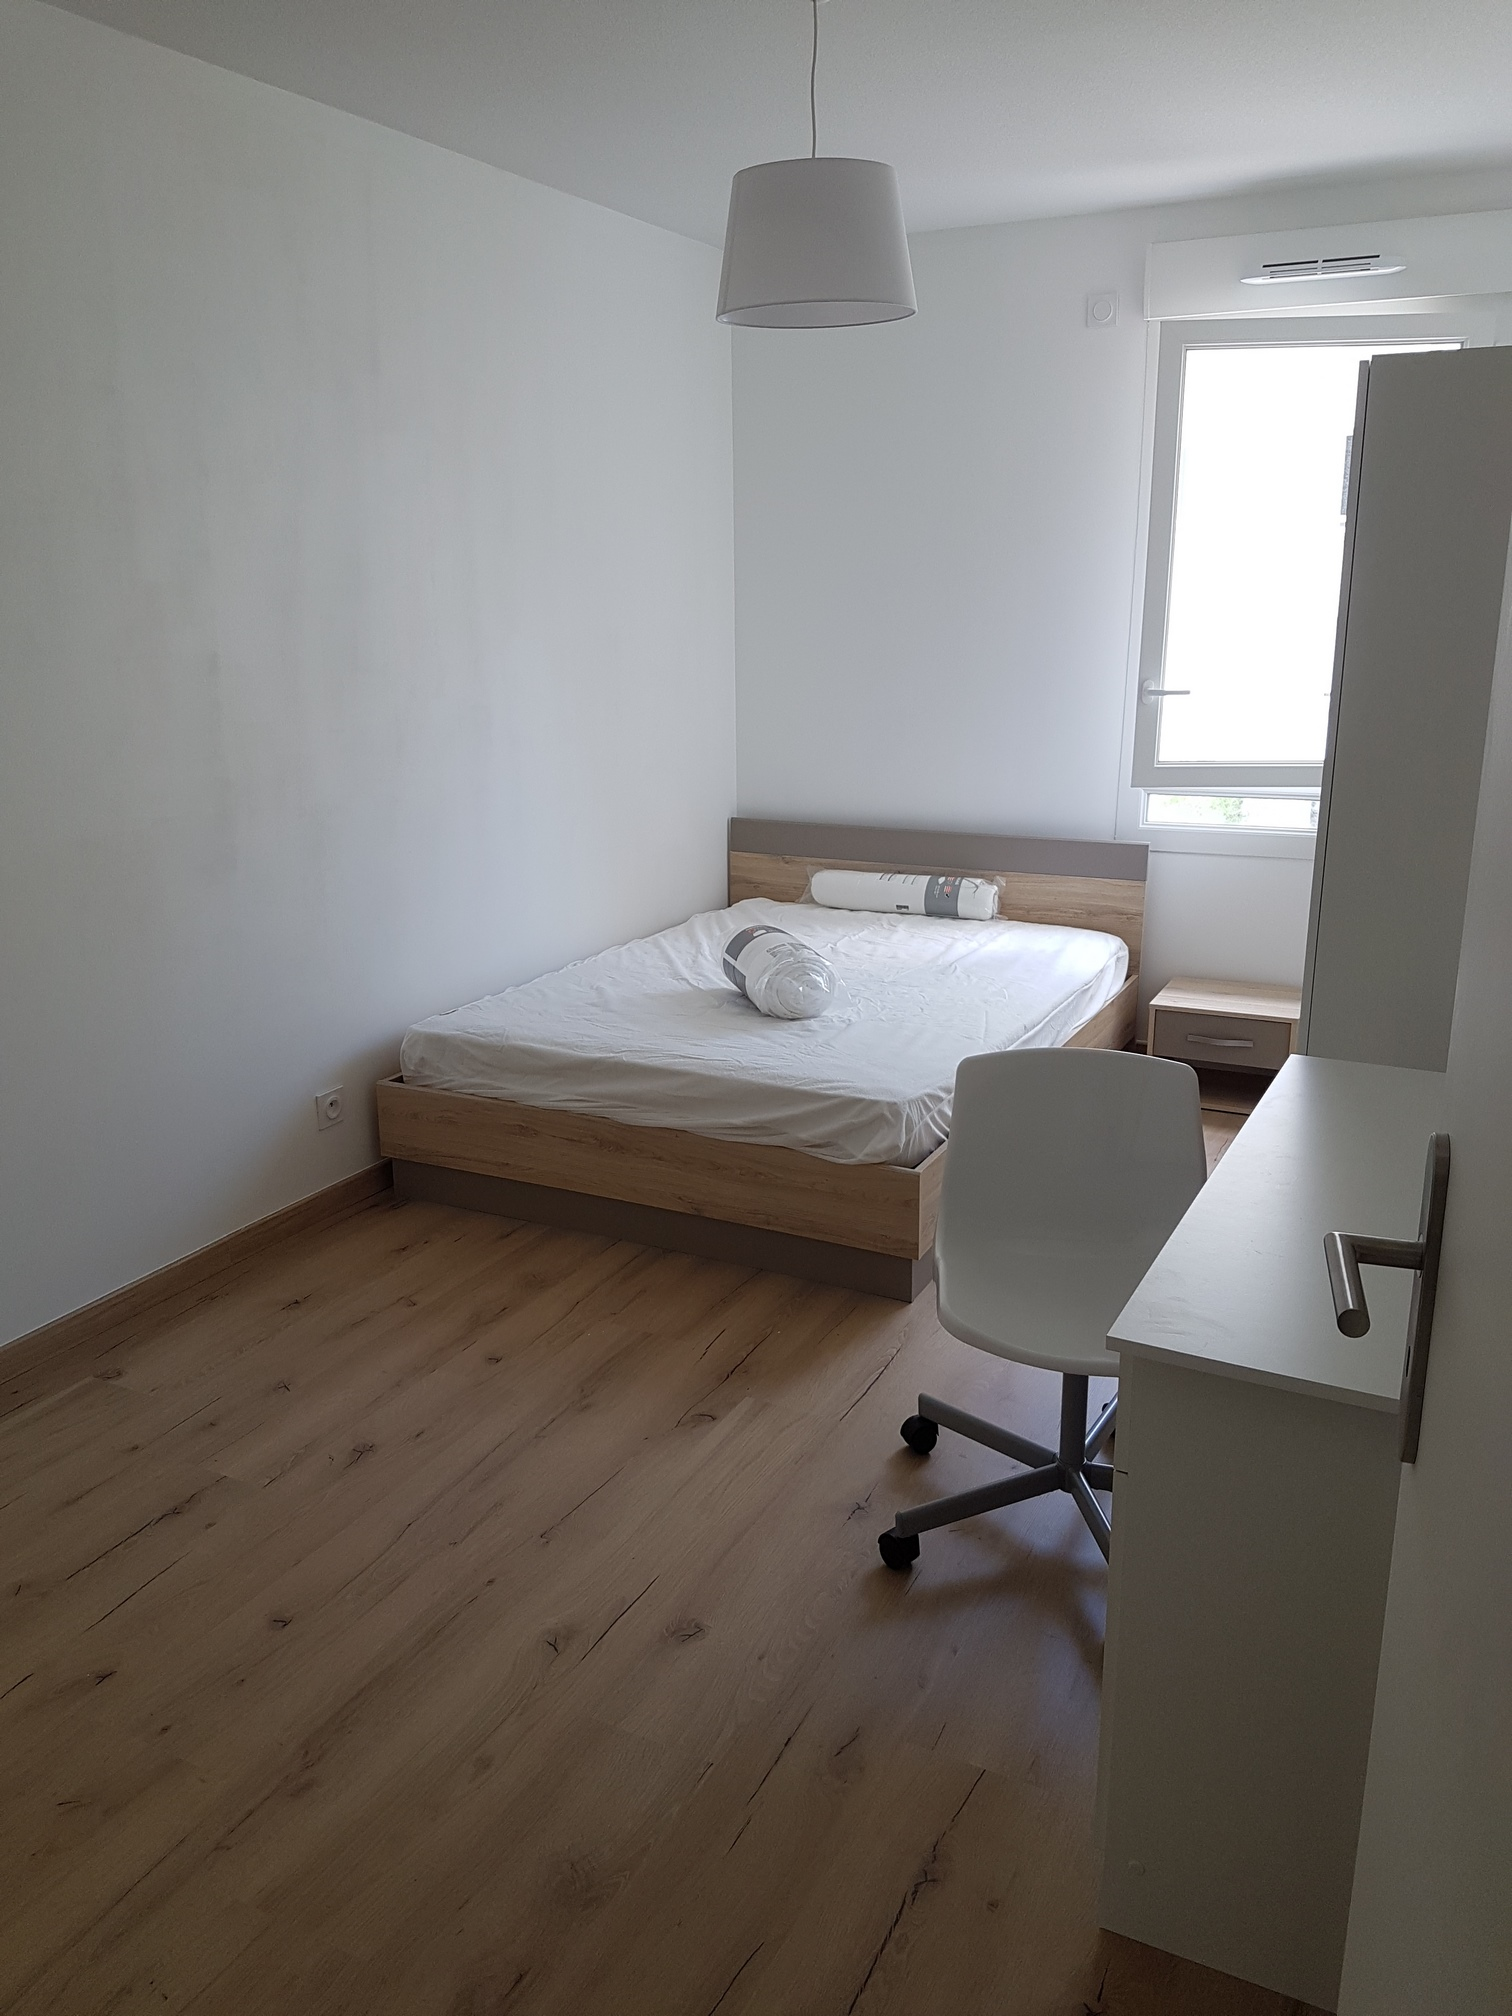 Colocation flatsharing/shared apartment Wohngemeinschaft Grenoble ?